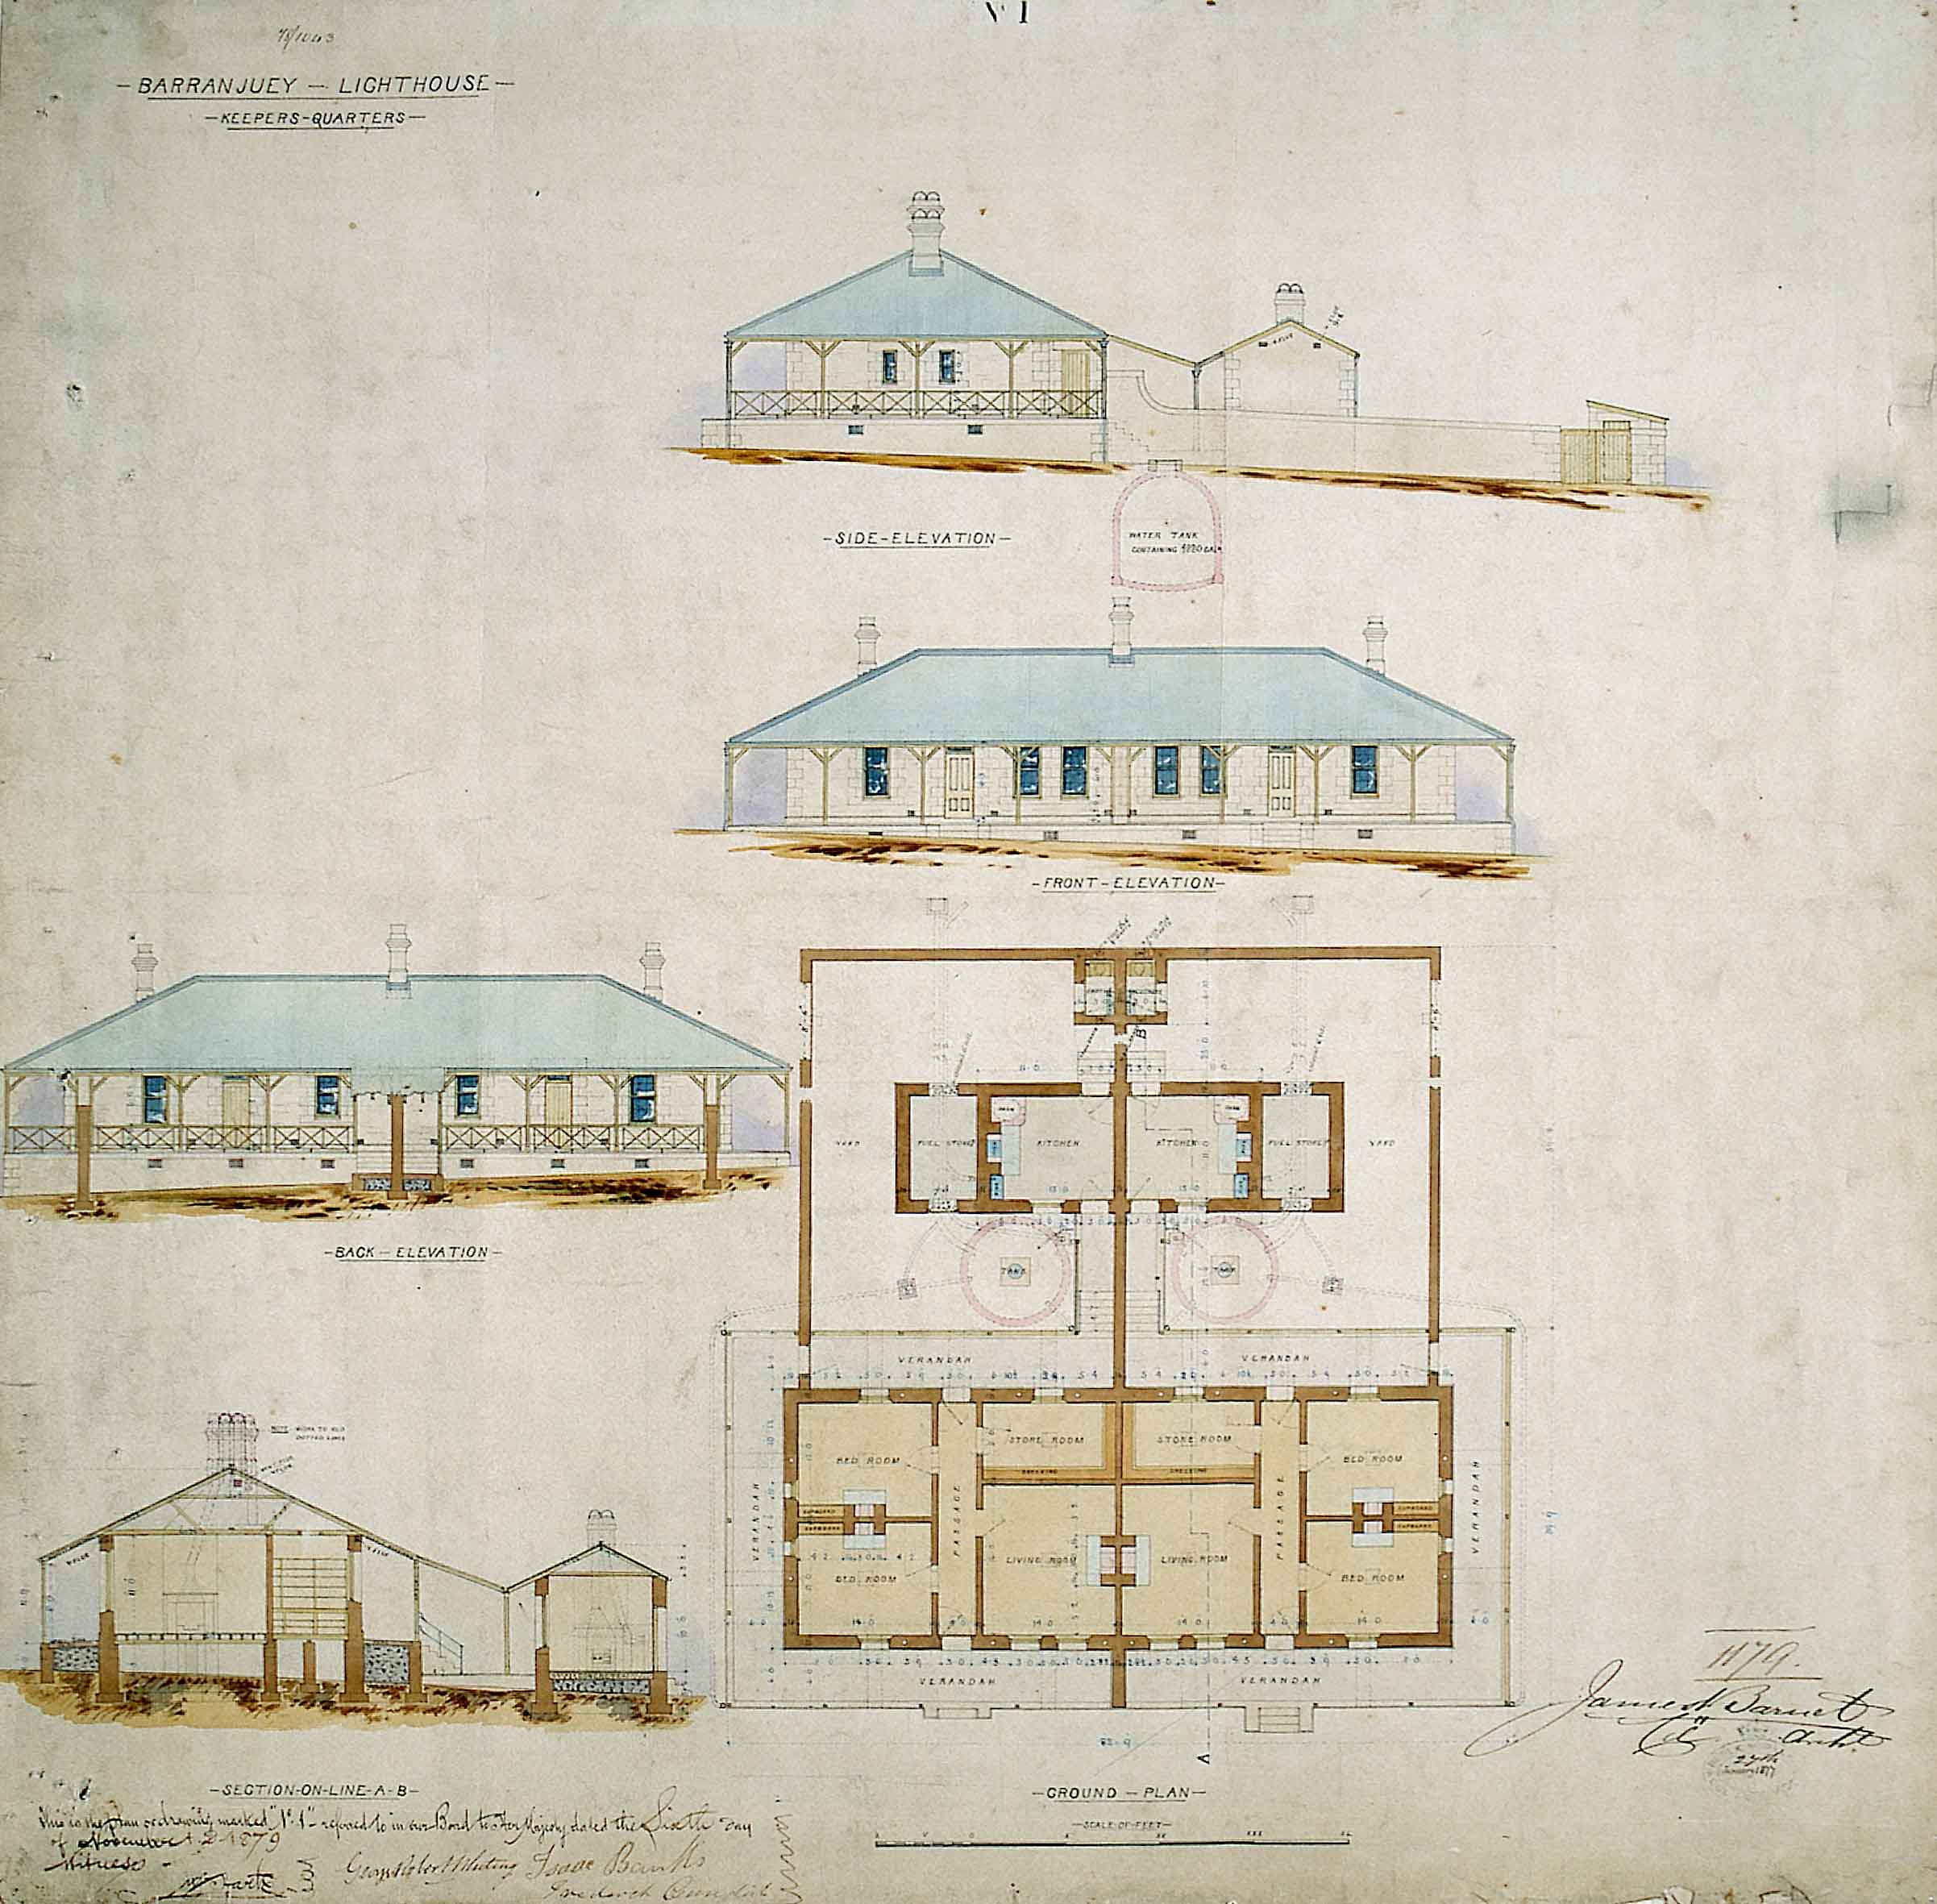 File barrenjoey head lighthouse keepers quarters plans for Lighthouse blueprints plans